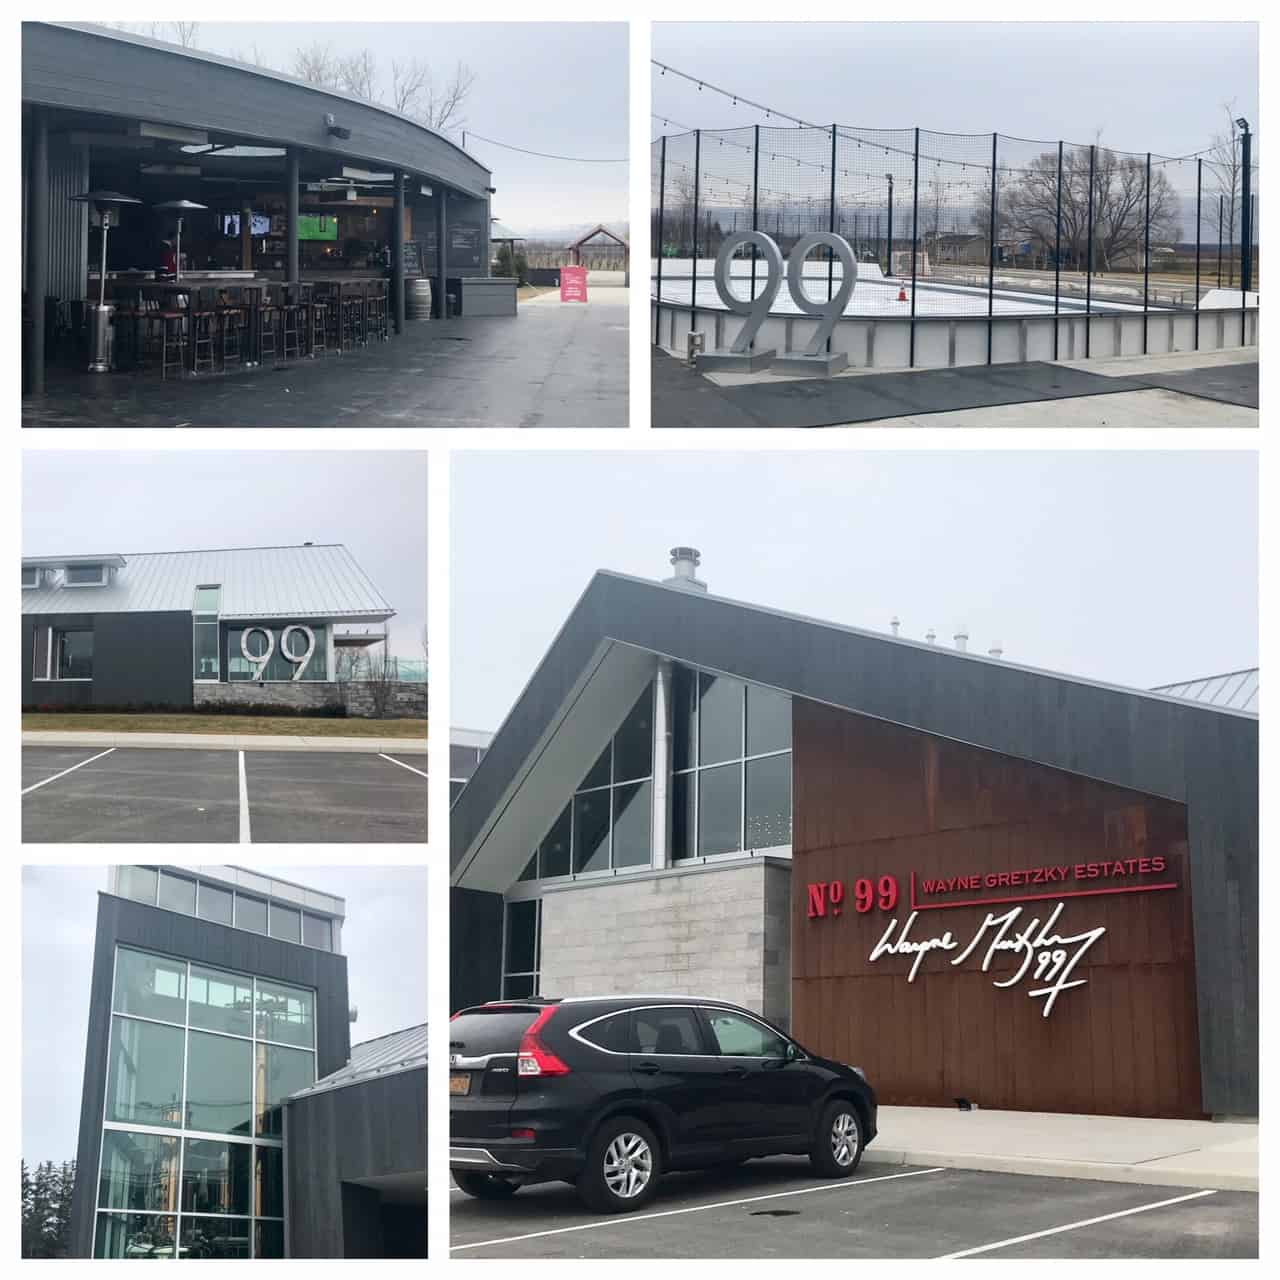 Collage of images from Wayne Gretzky Estates